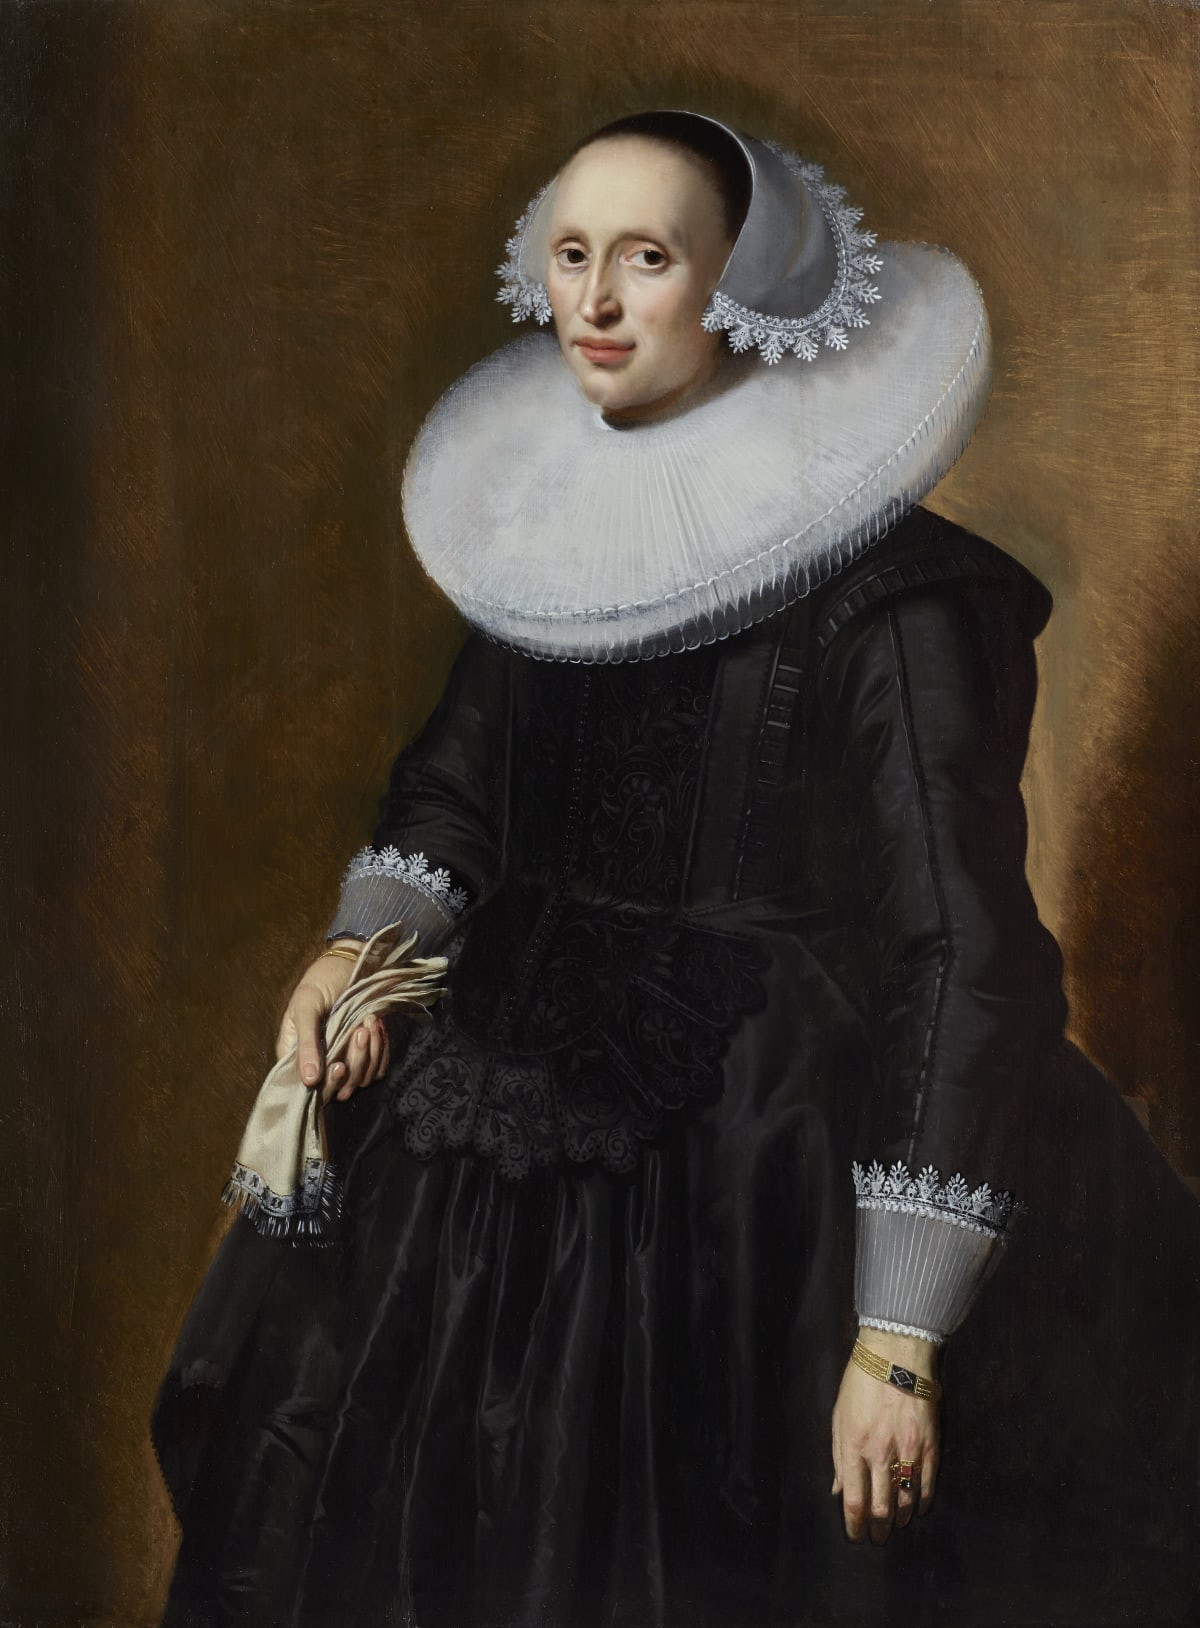 Jan Daemen Cool (c. 1589 – 1660) An Unknown Lady, circa 1630s Oil on panel 45 ⅛ x 35 ⅝ in. (114.7 x 85.4 cm.)